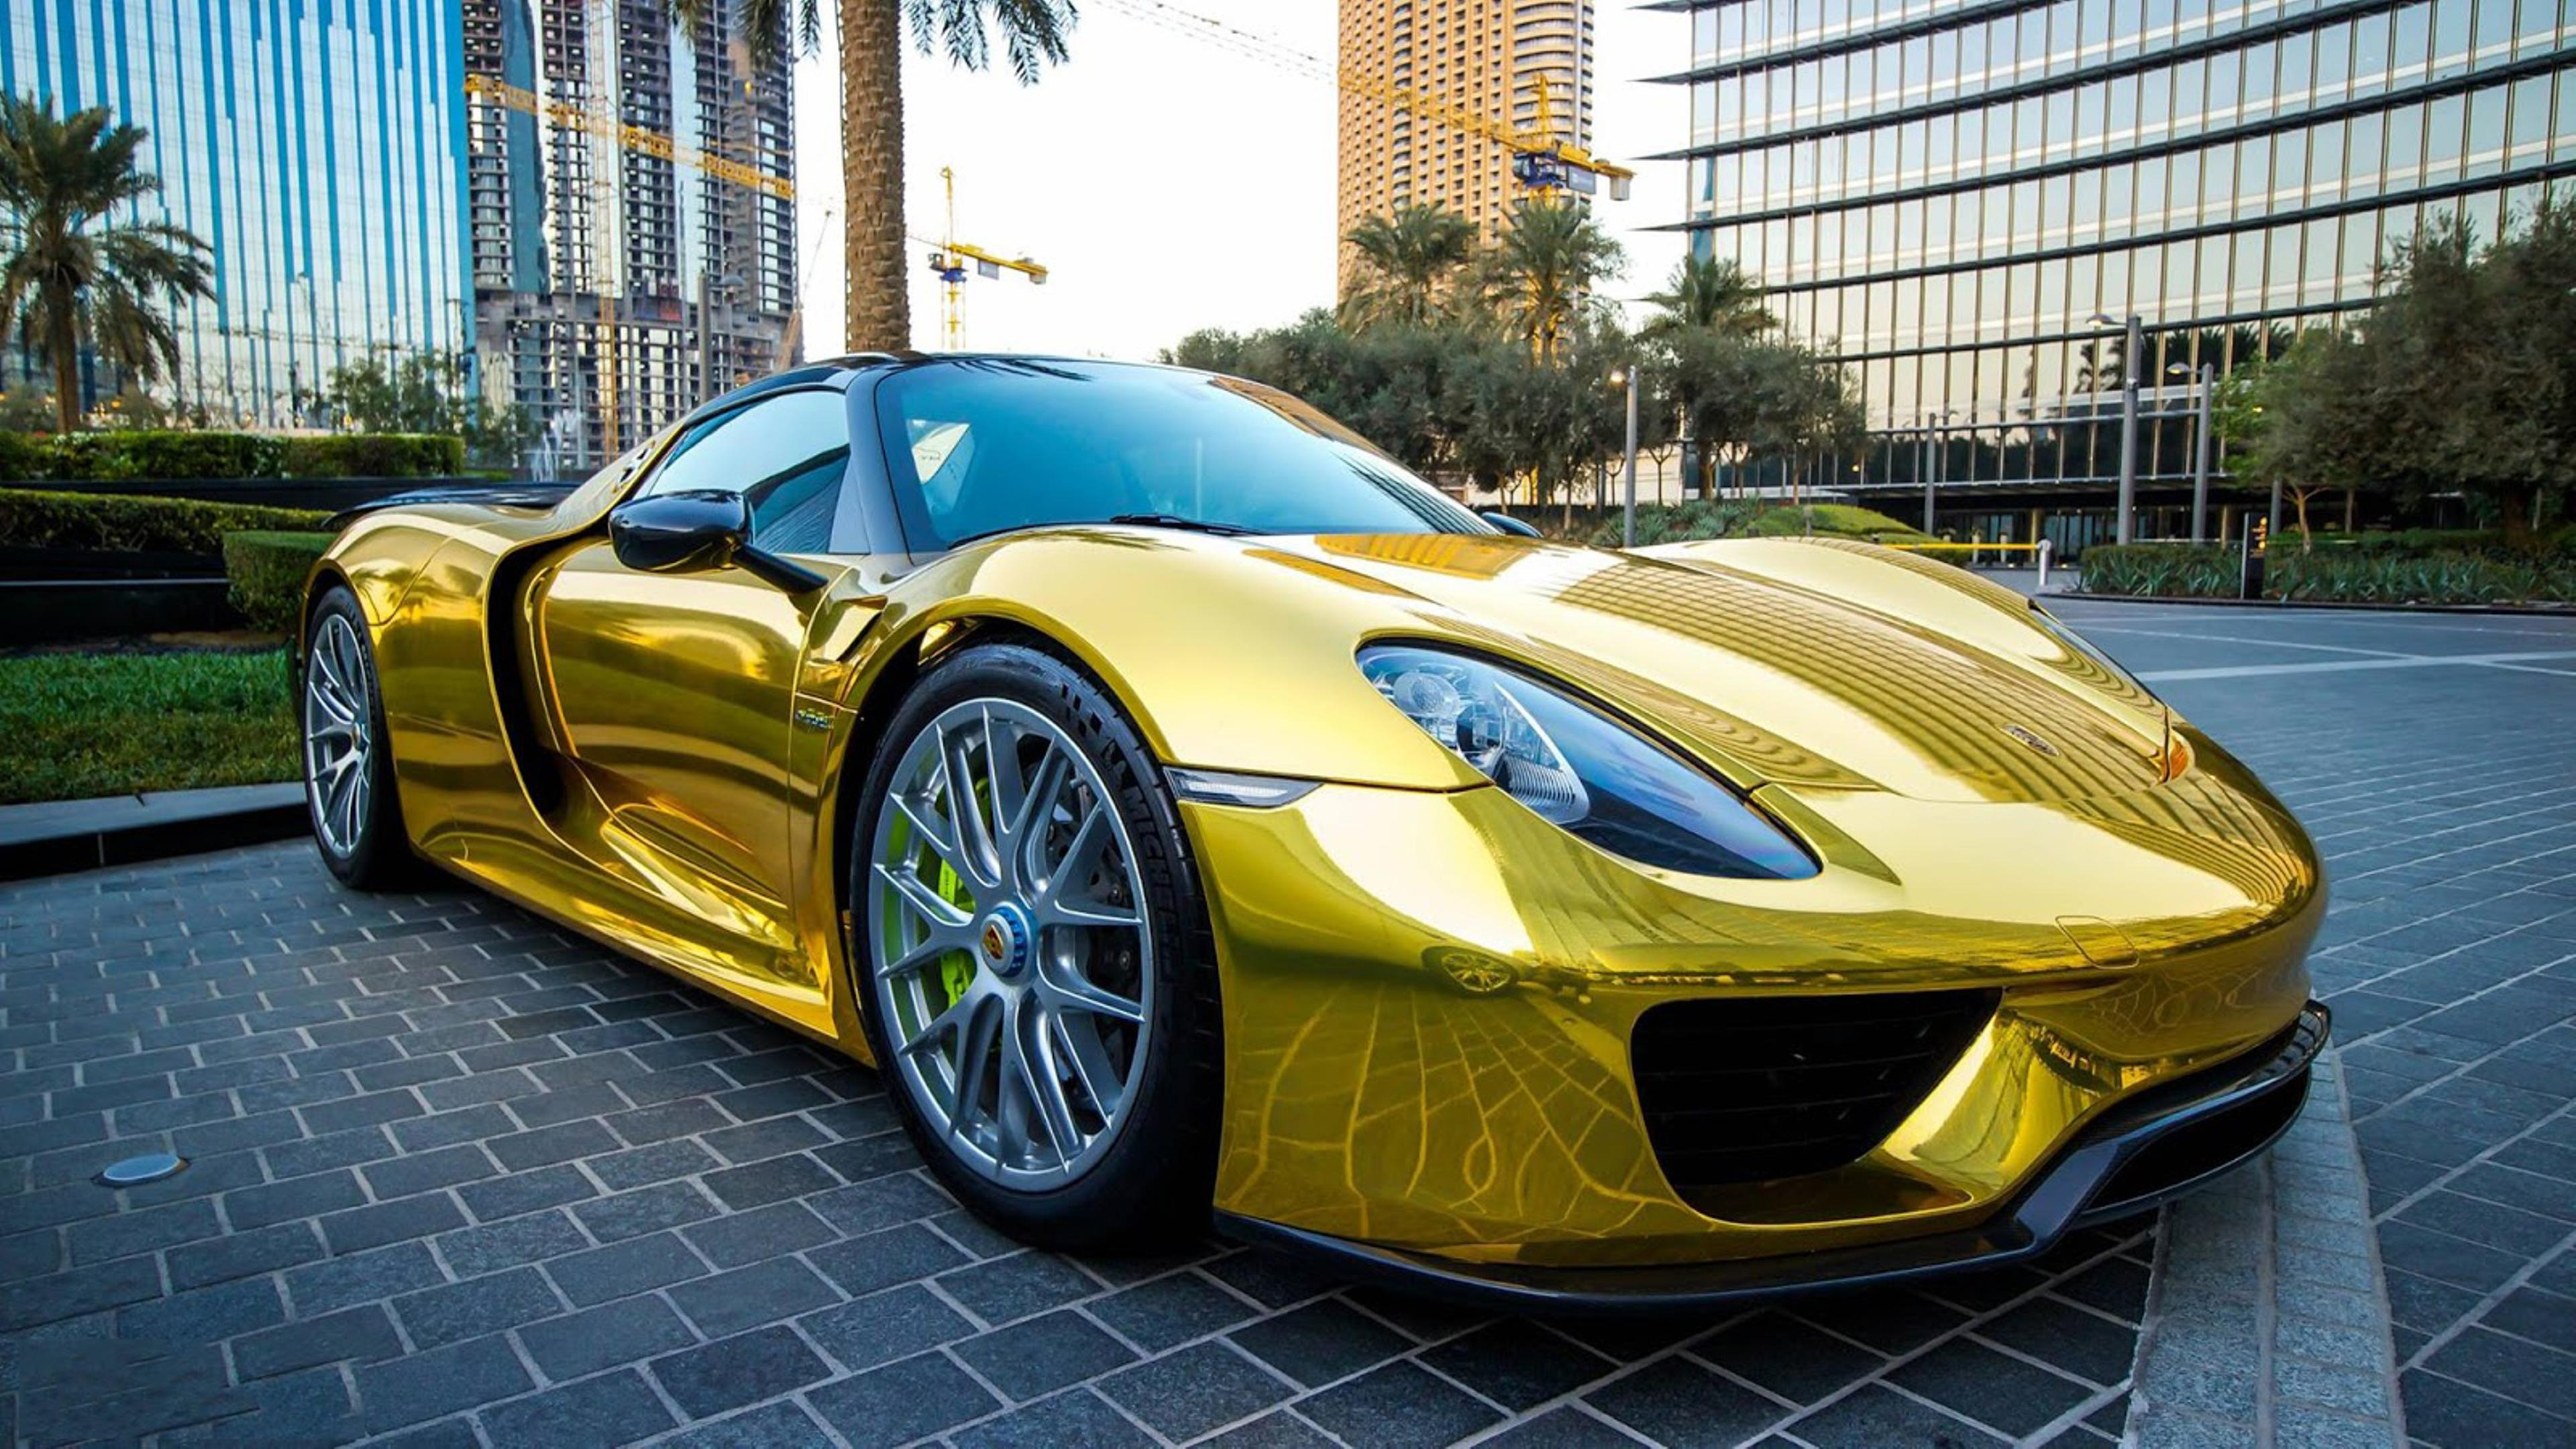 gold porsche 918 spyder in the parking wallpaper download 3840x2160